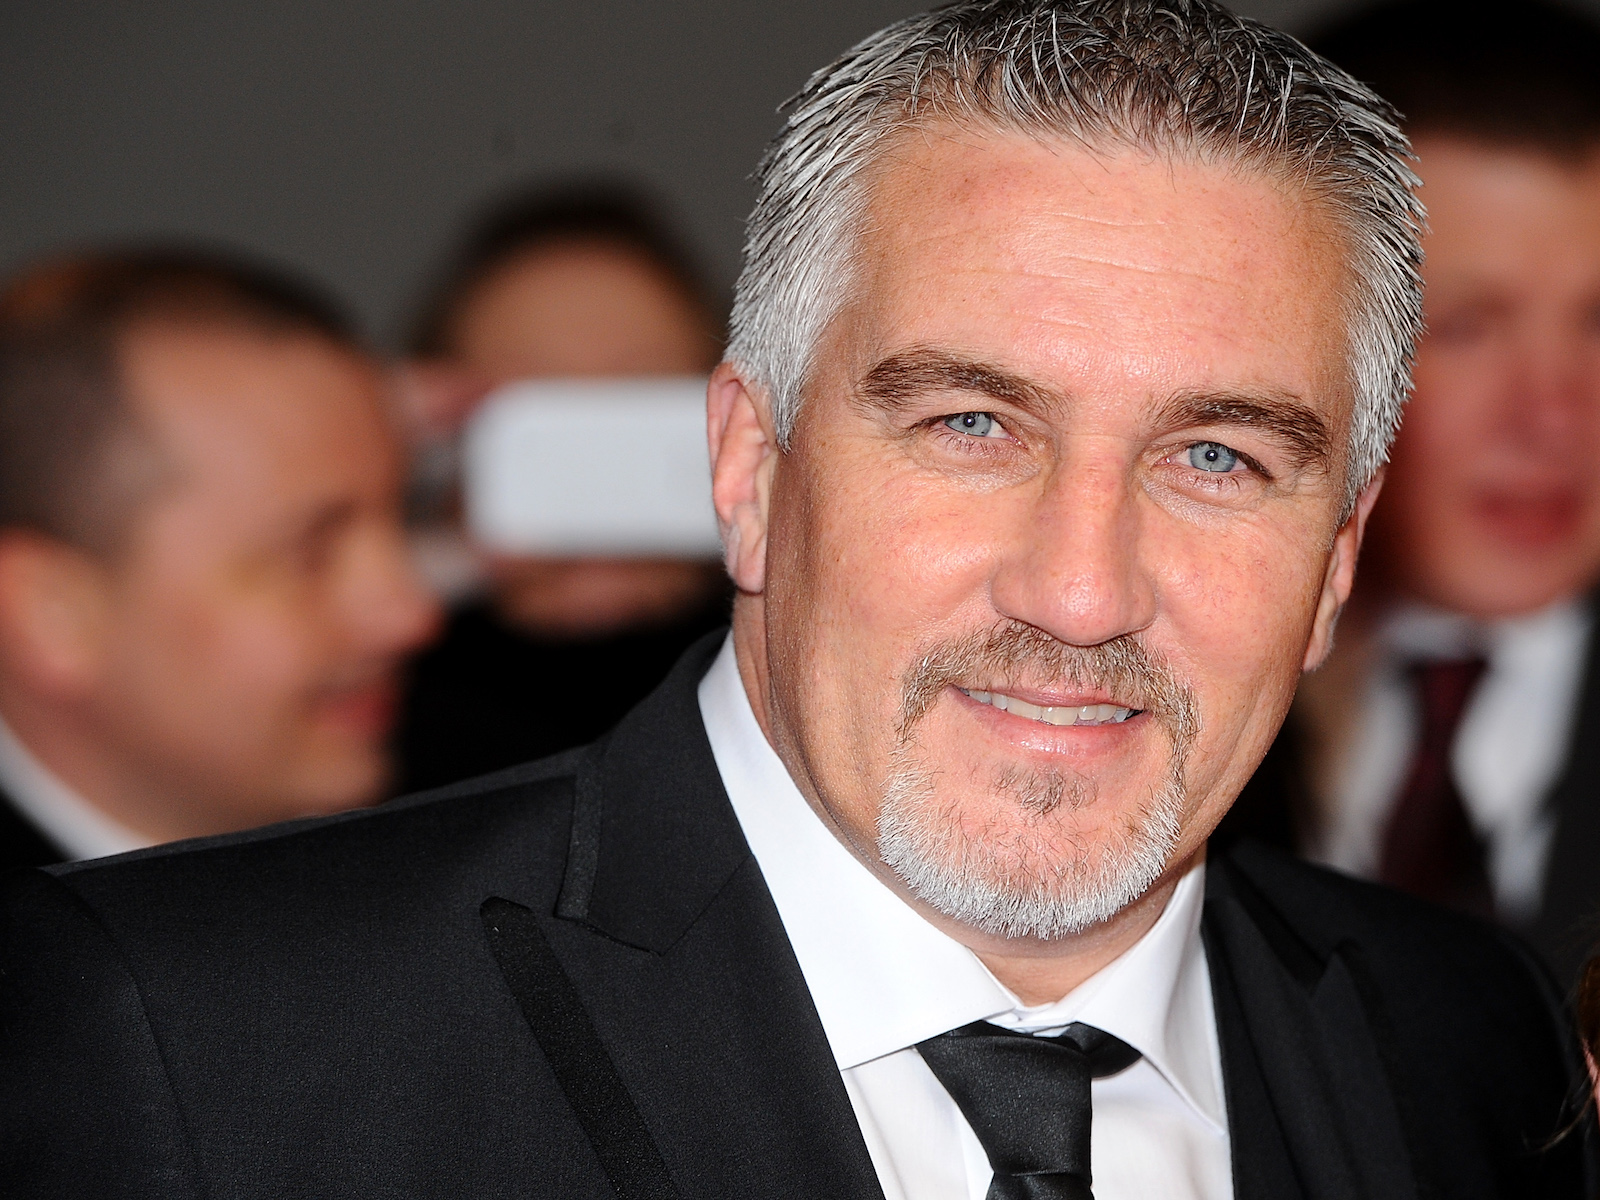 Paul Hollywood Misses Mary Berry on the 'Great British ...